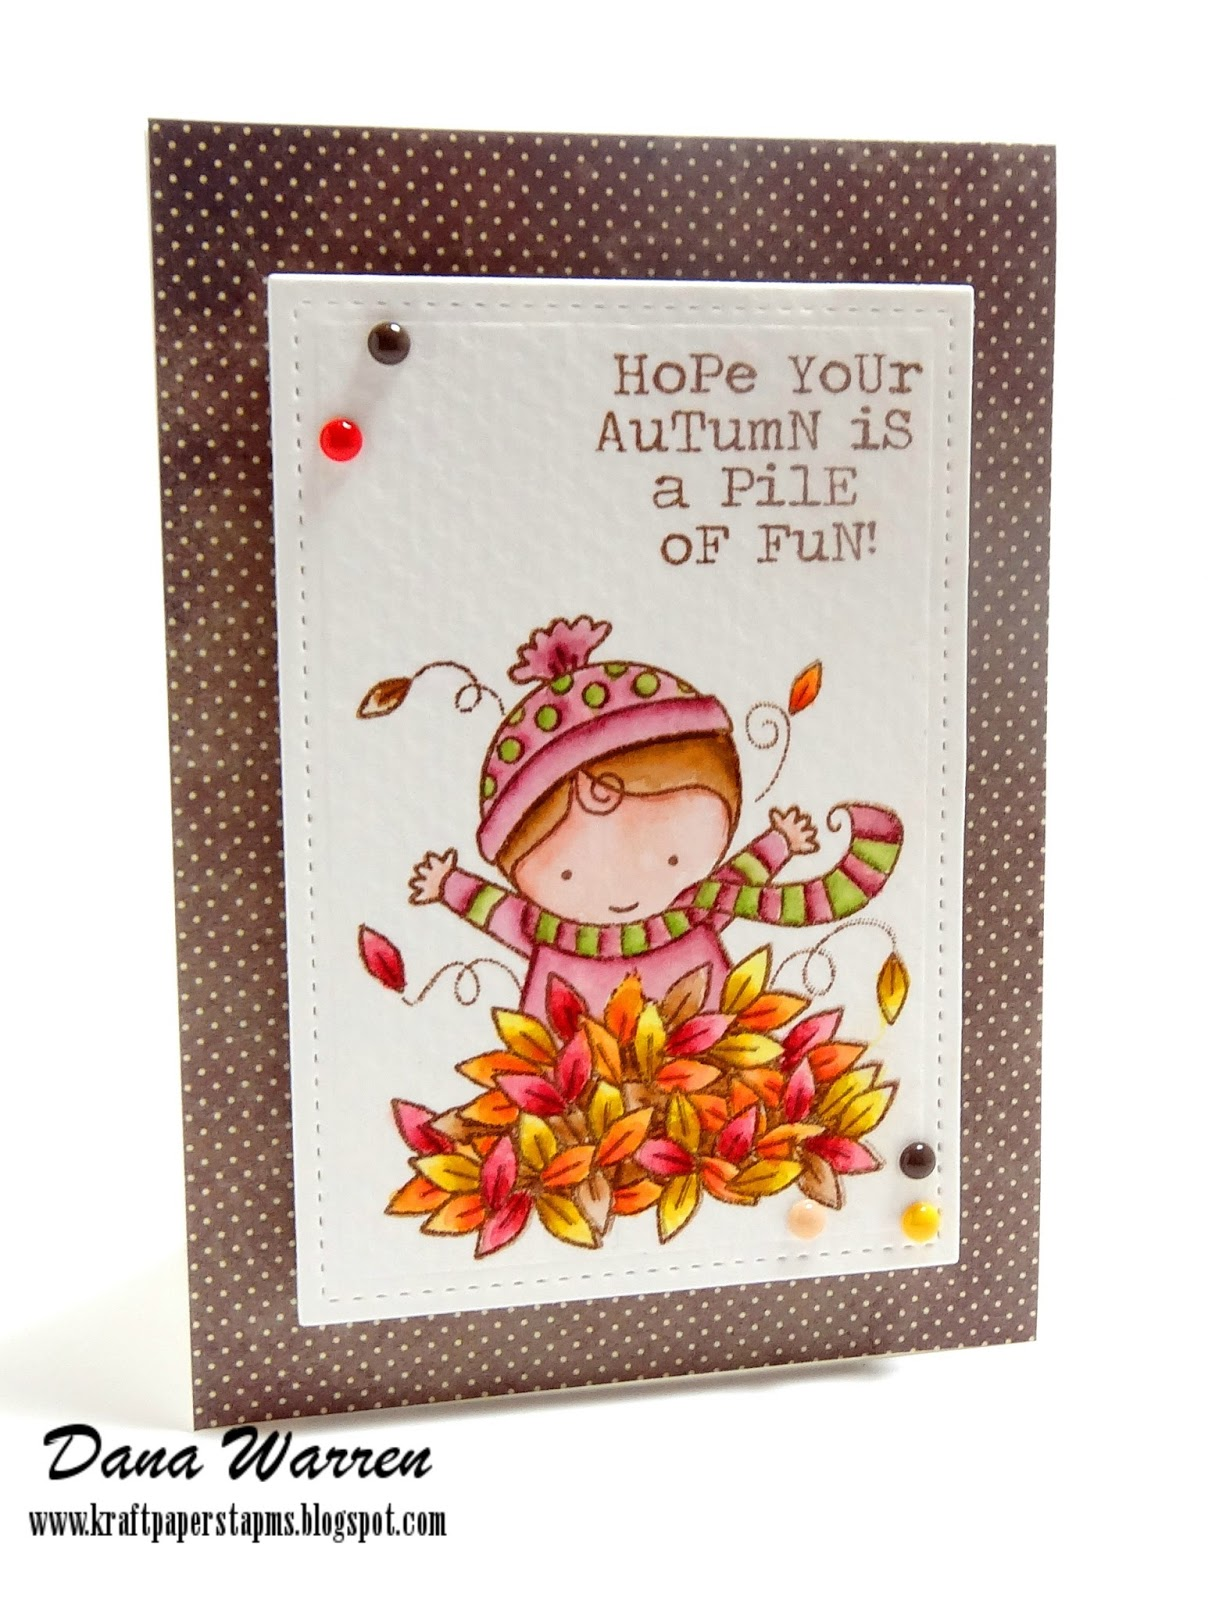 Dana Warren - Kraft Paper Stamps - Darcie's Heart & Home